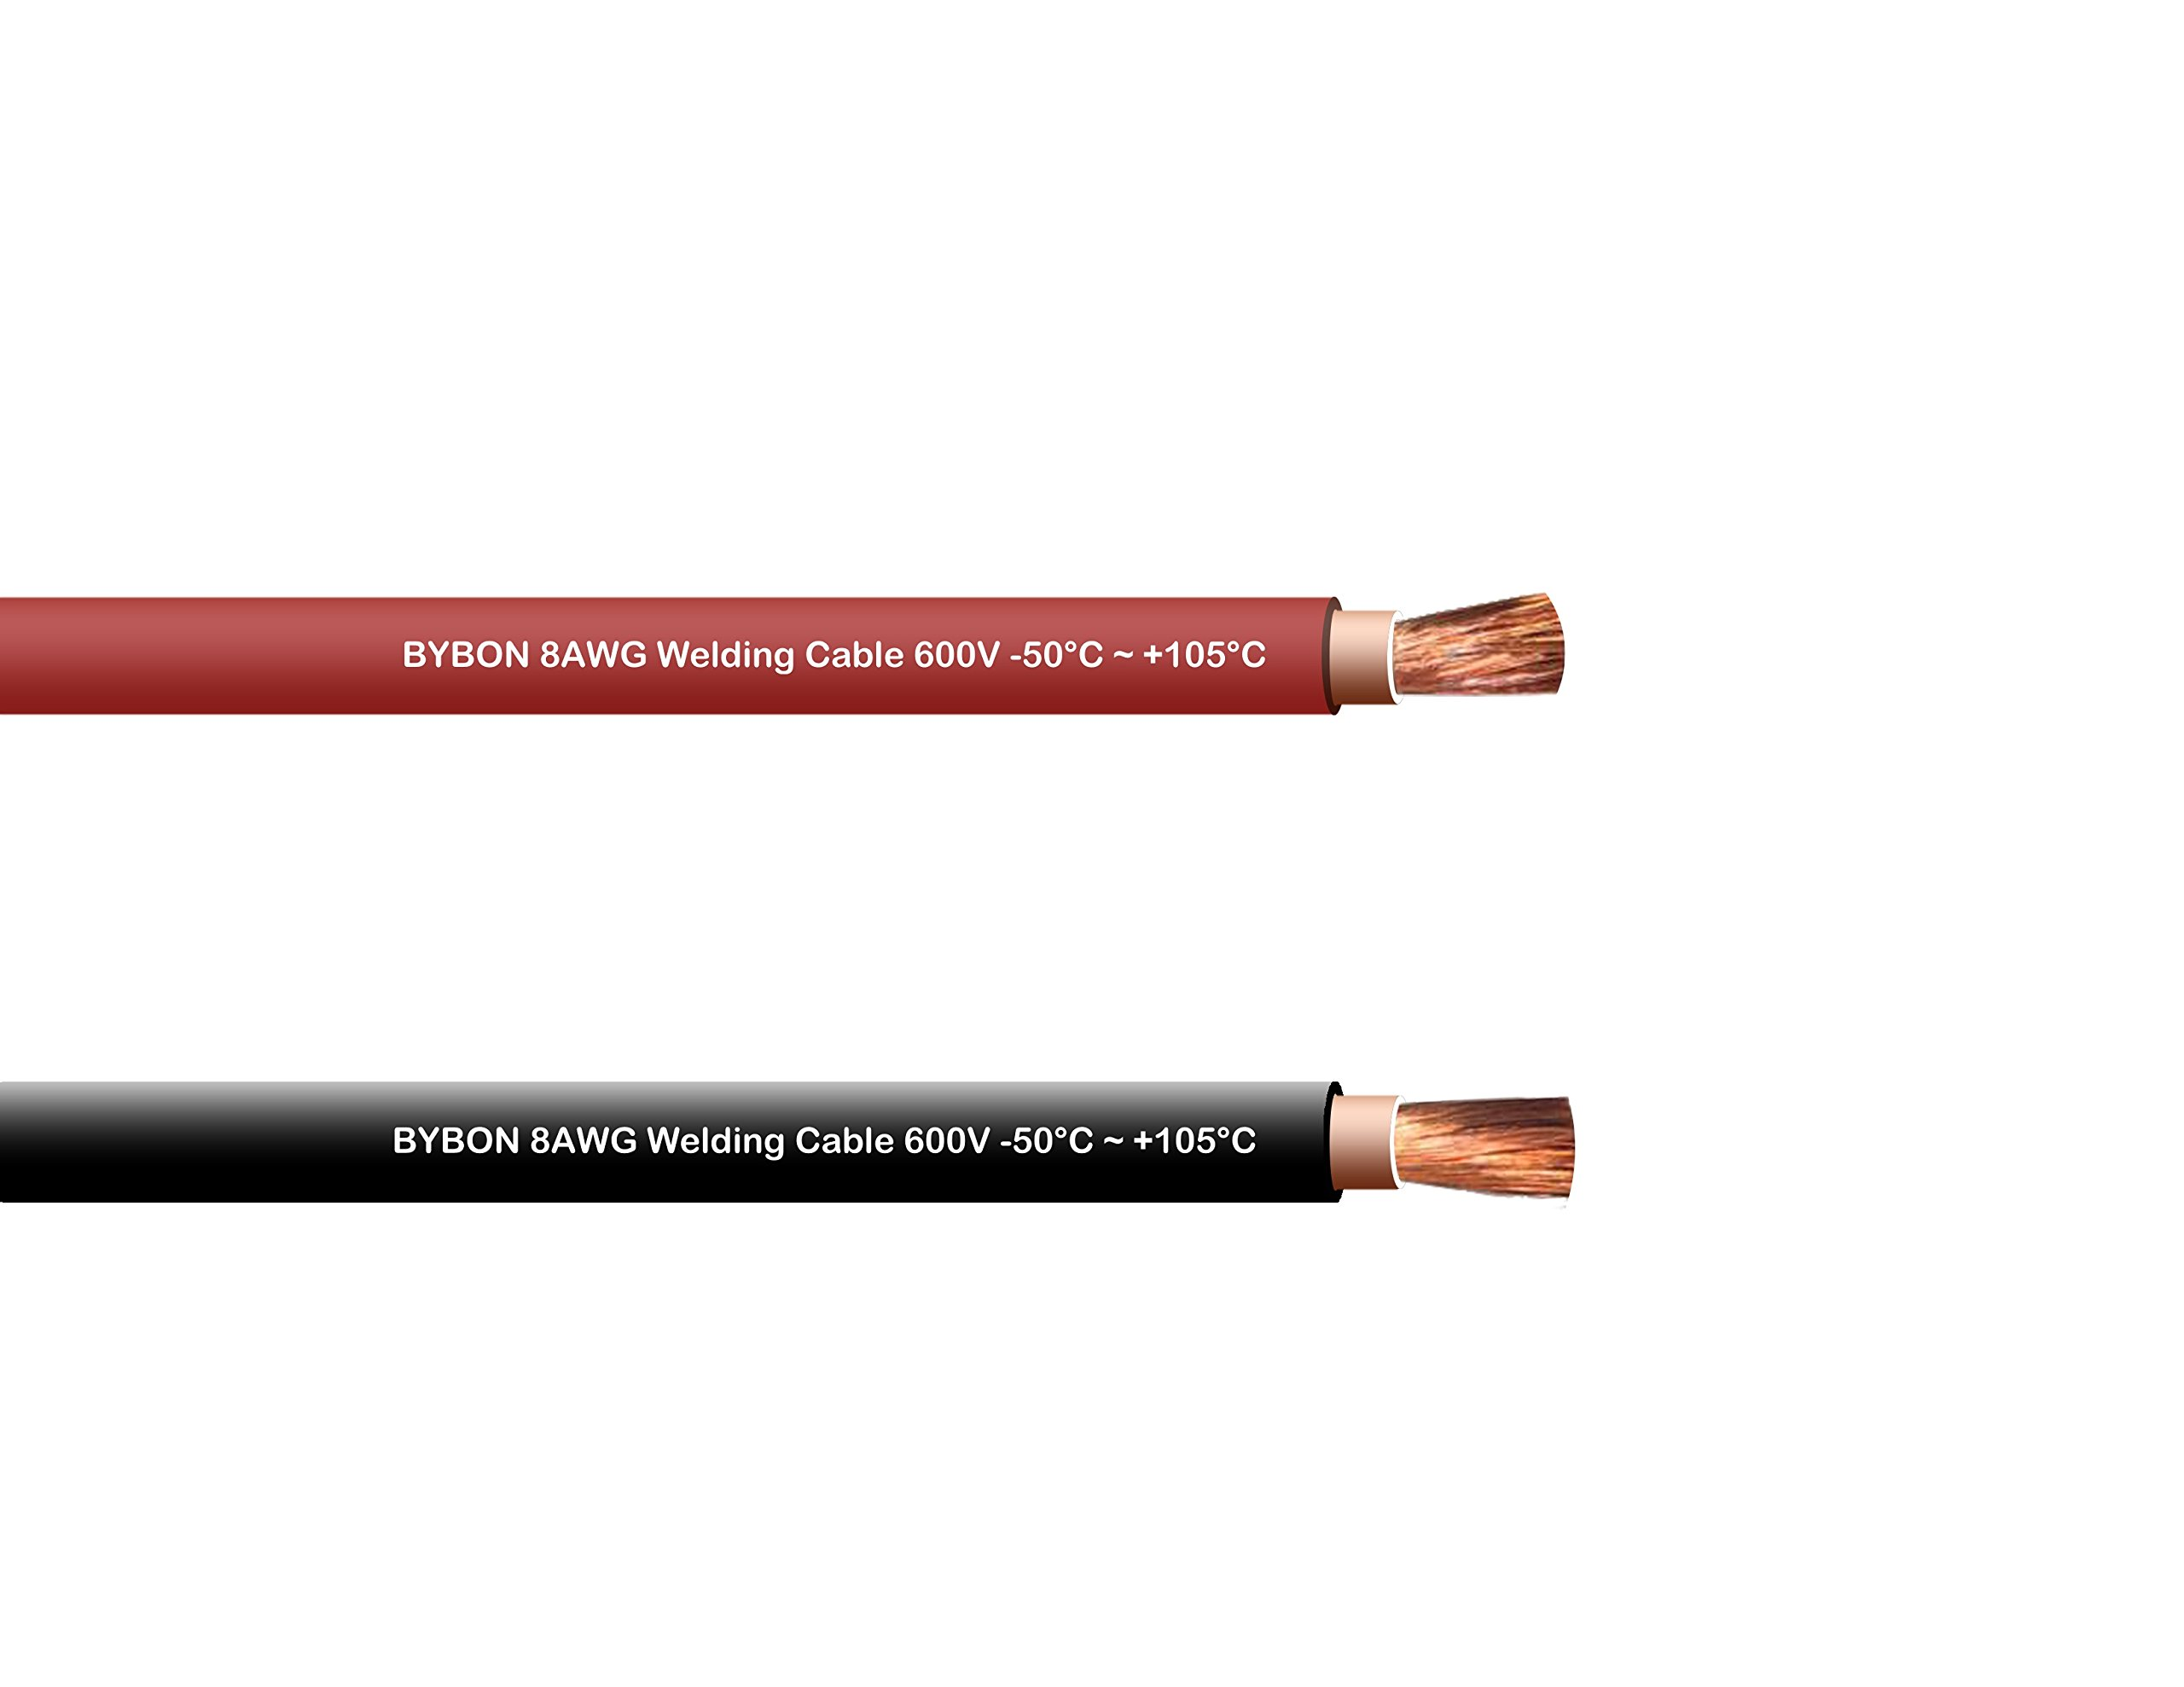 Bybon 8 AWG Welding Cable 600V COMBO PACK Black + Red (20 FT Each)